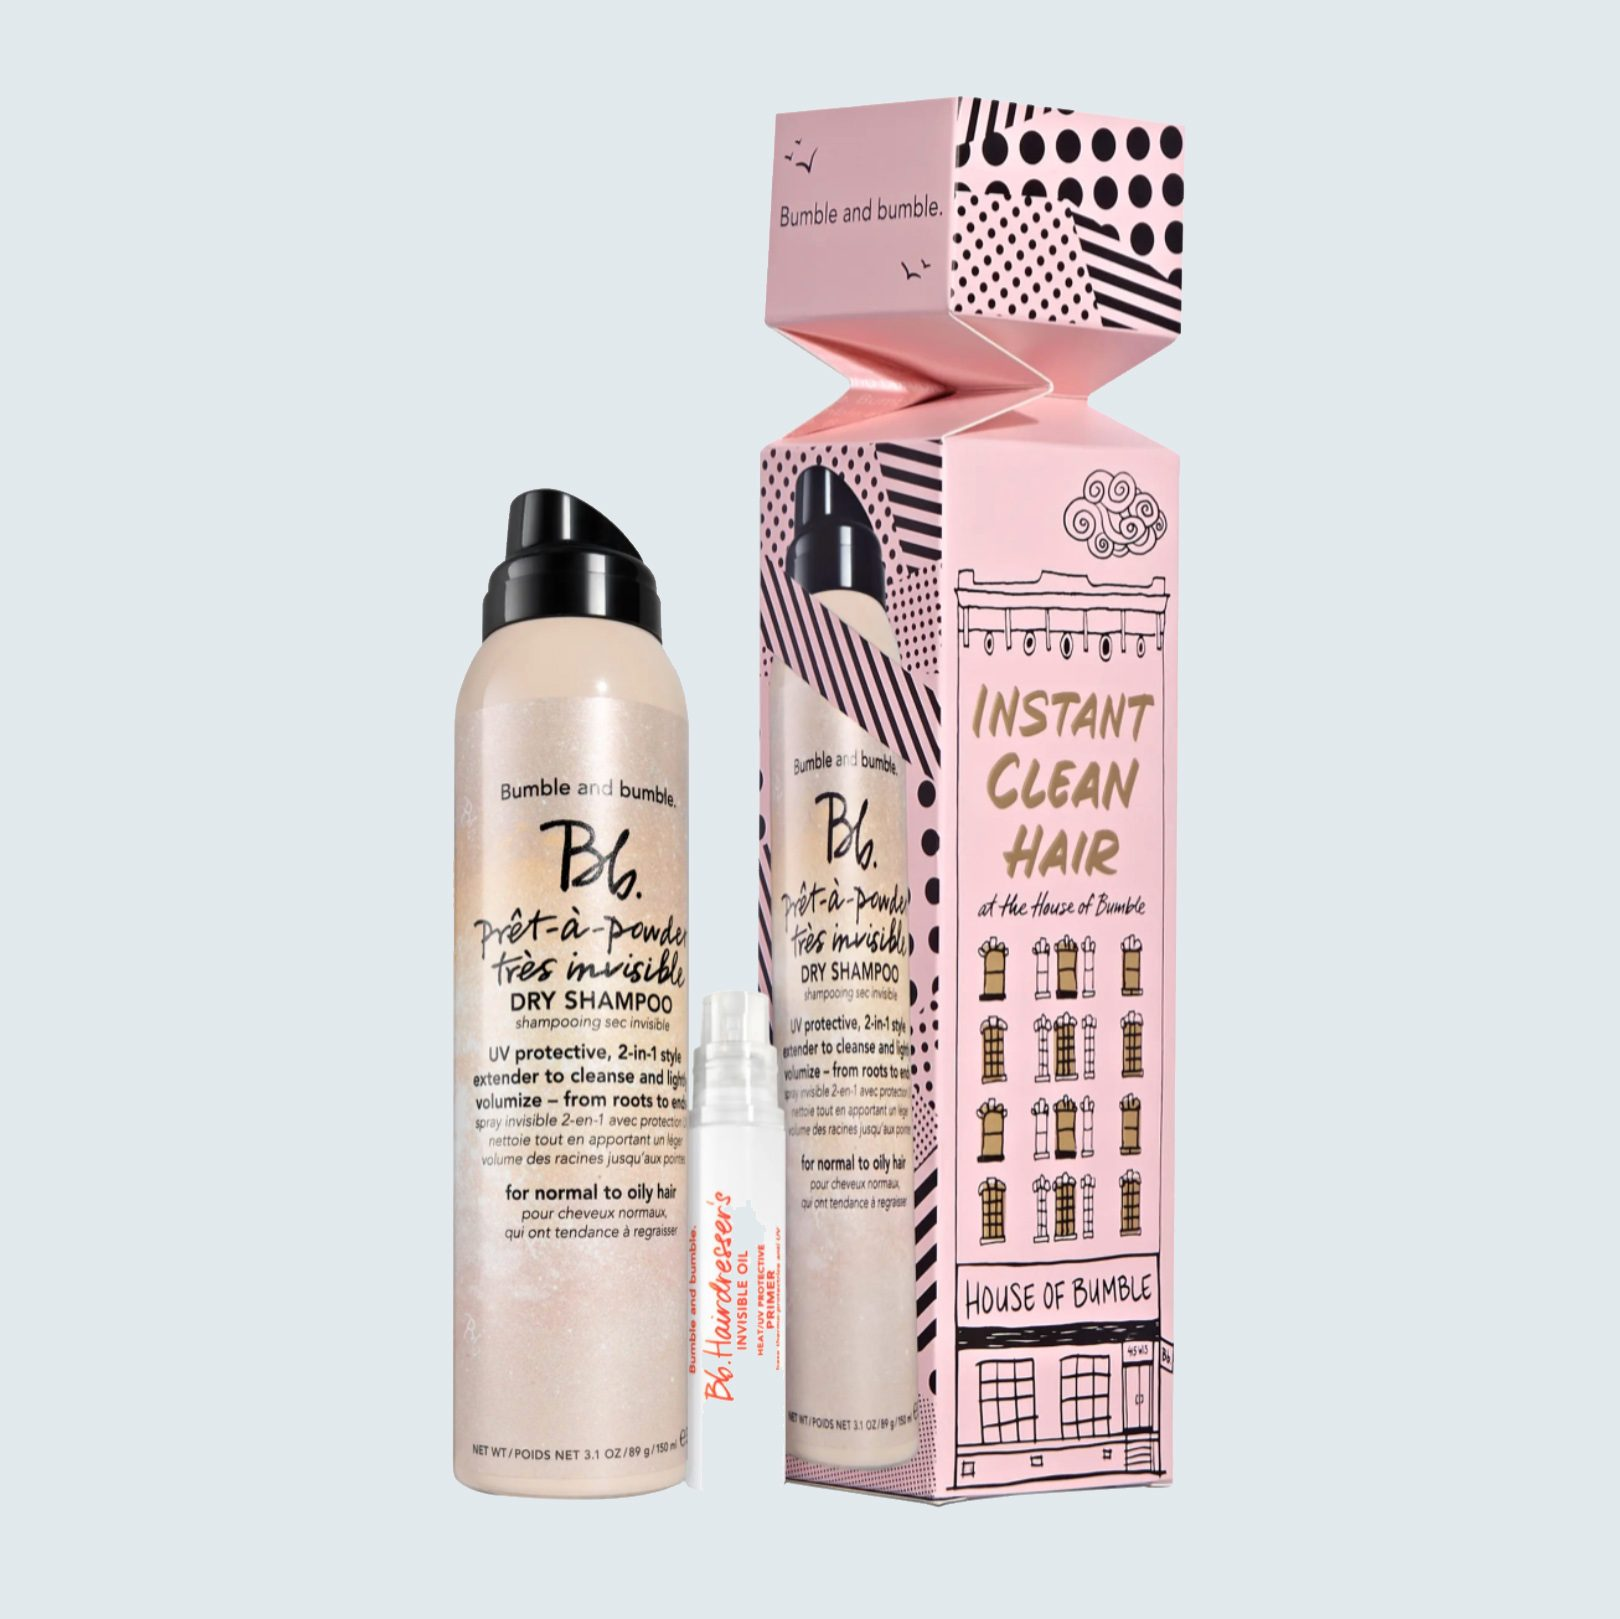 Bumble and Bumble Instant Clean Hair Set